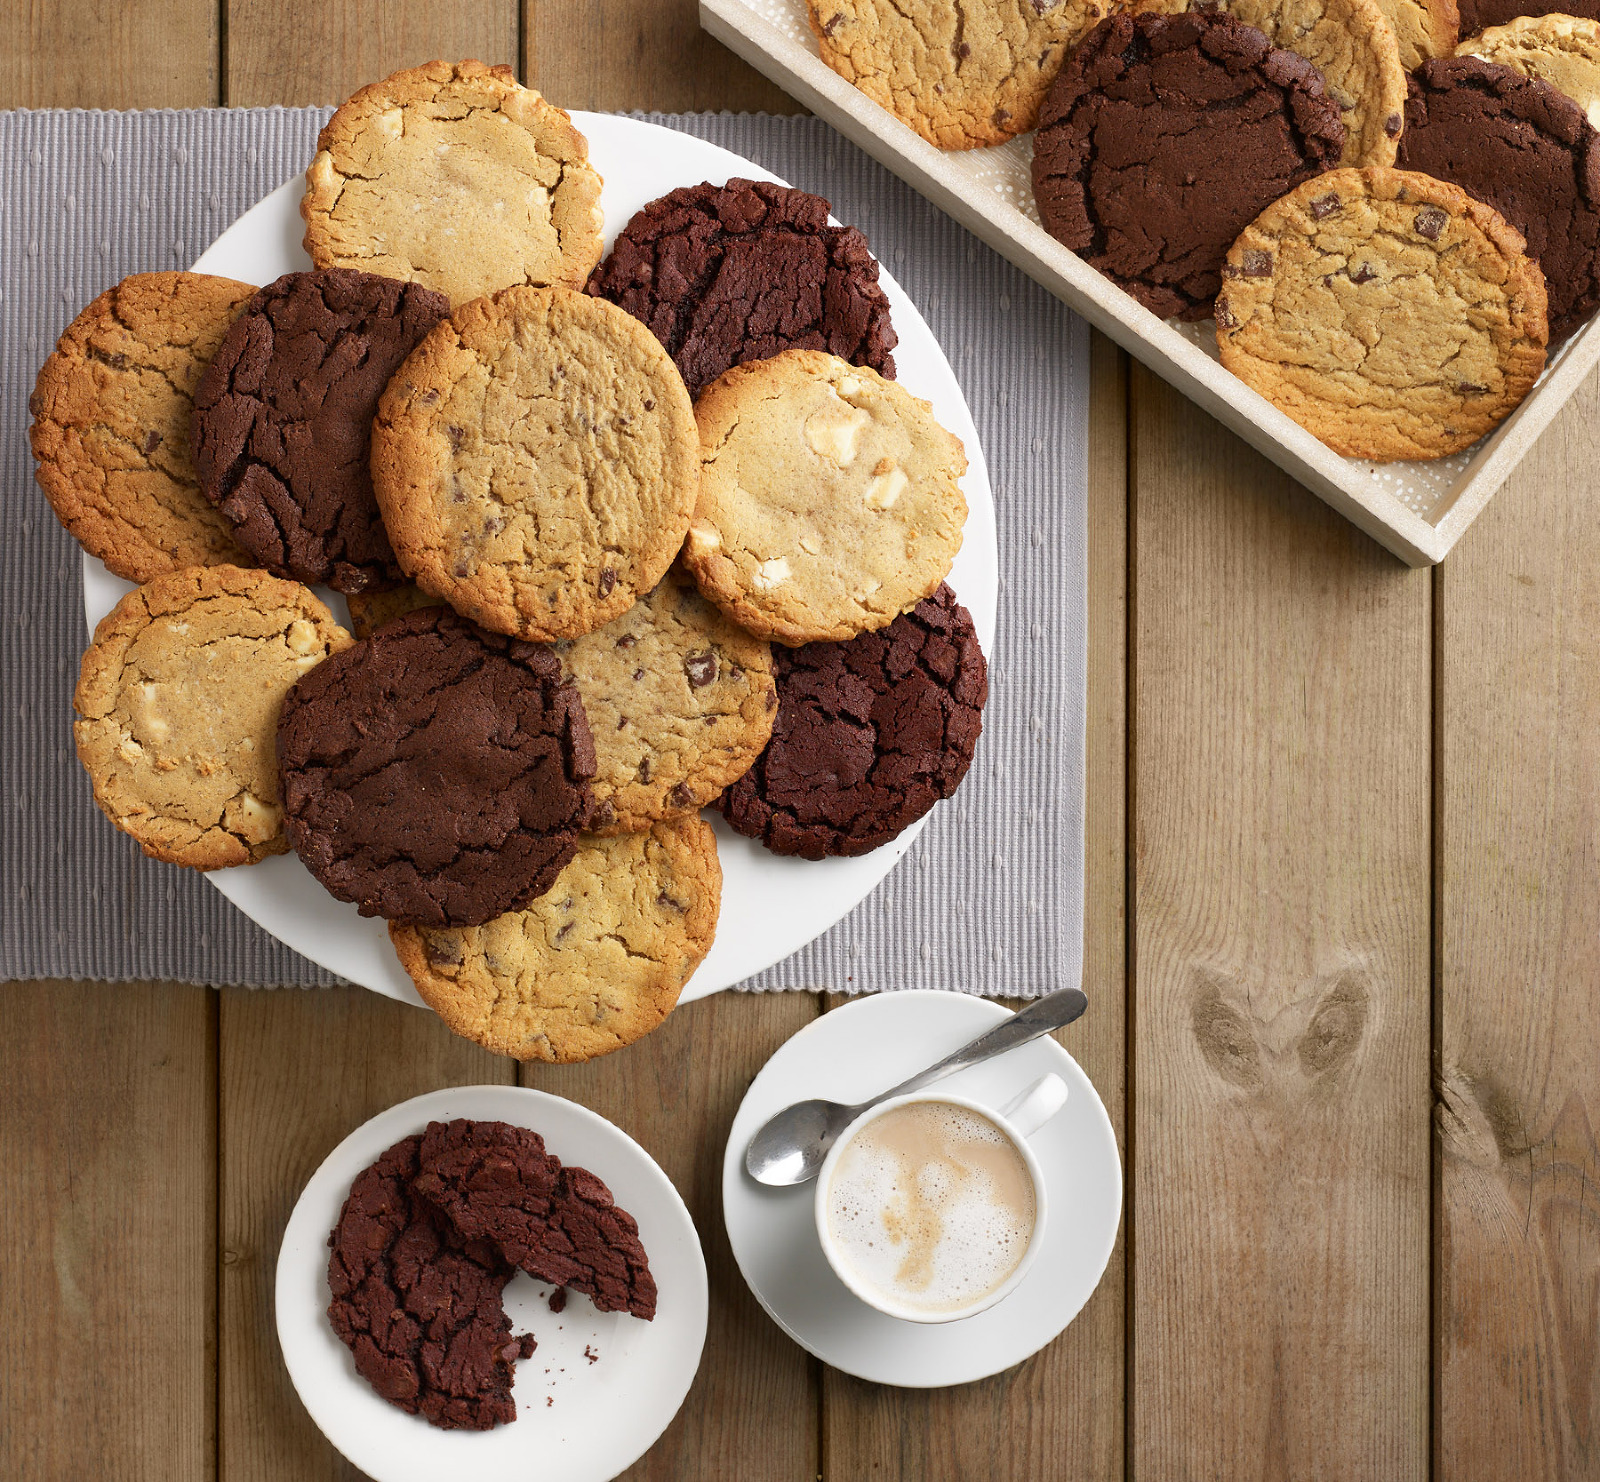 Cookies served on wooden table